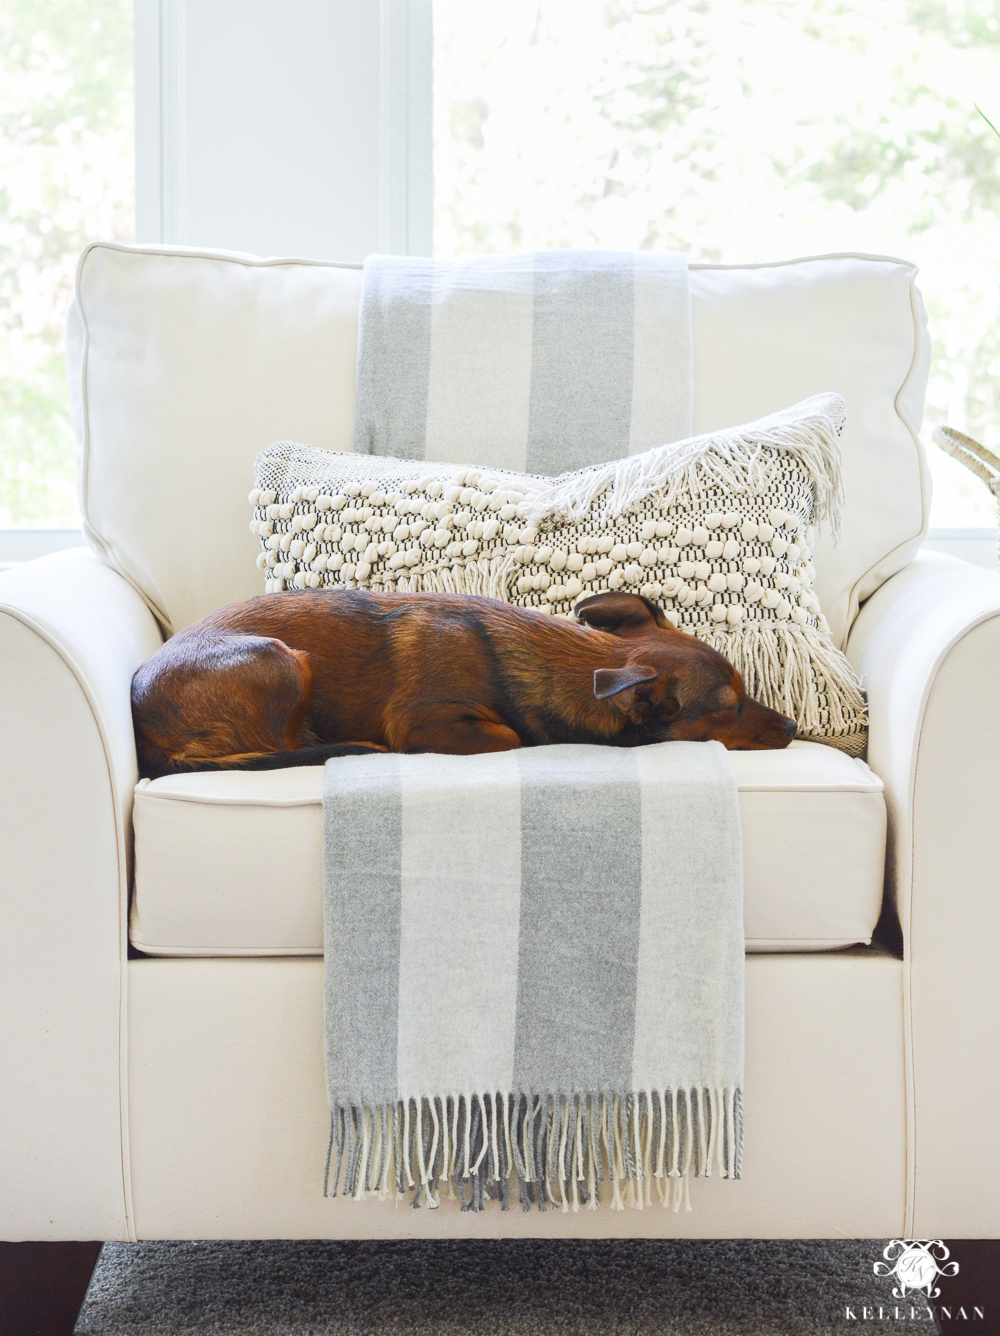 Puppy napping in oversized chair in sitting area